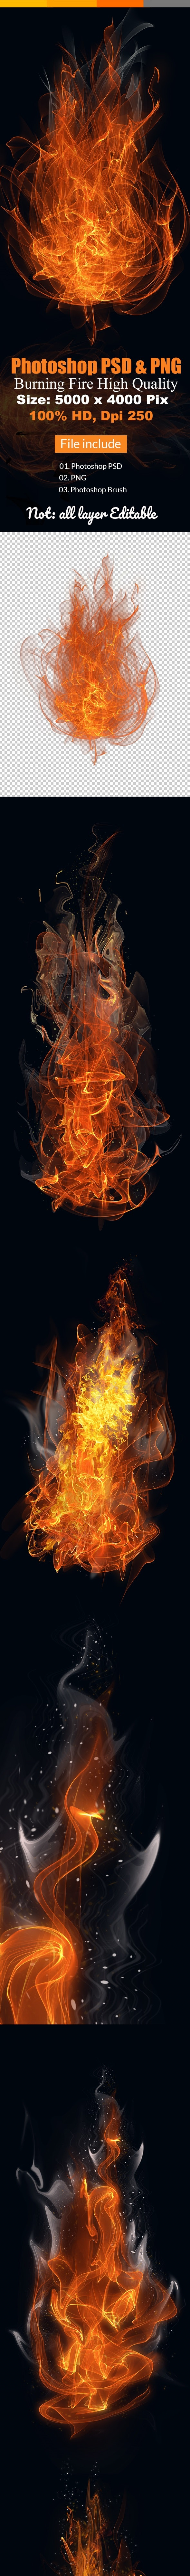 Fire & Flames Brushes High Quality - Abstract Brushes